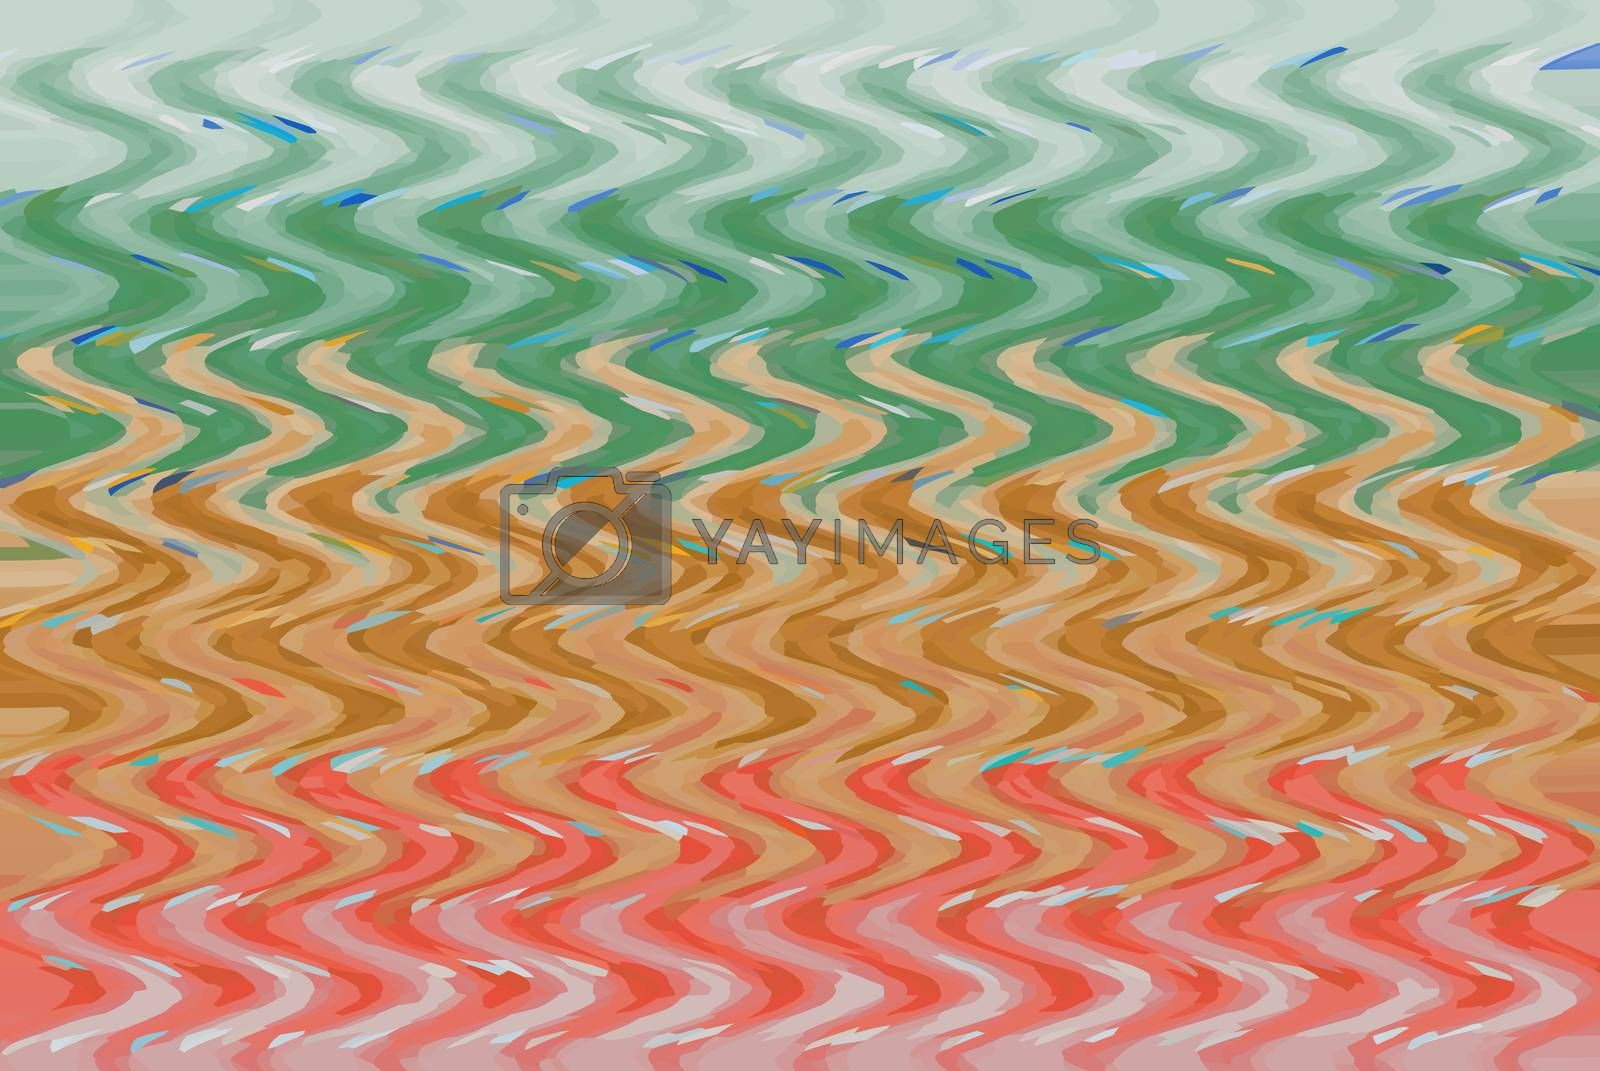 Abstract stylish background for design. Stylish multicolor background for presentation, wallpaper, banner.